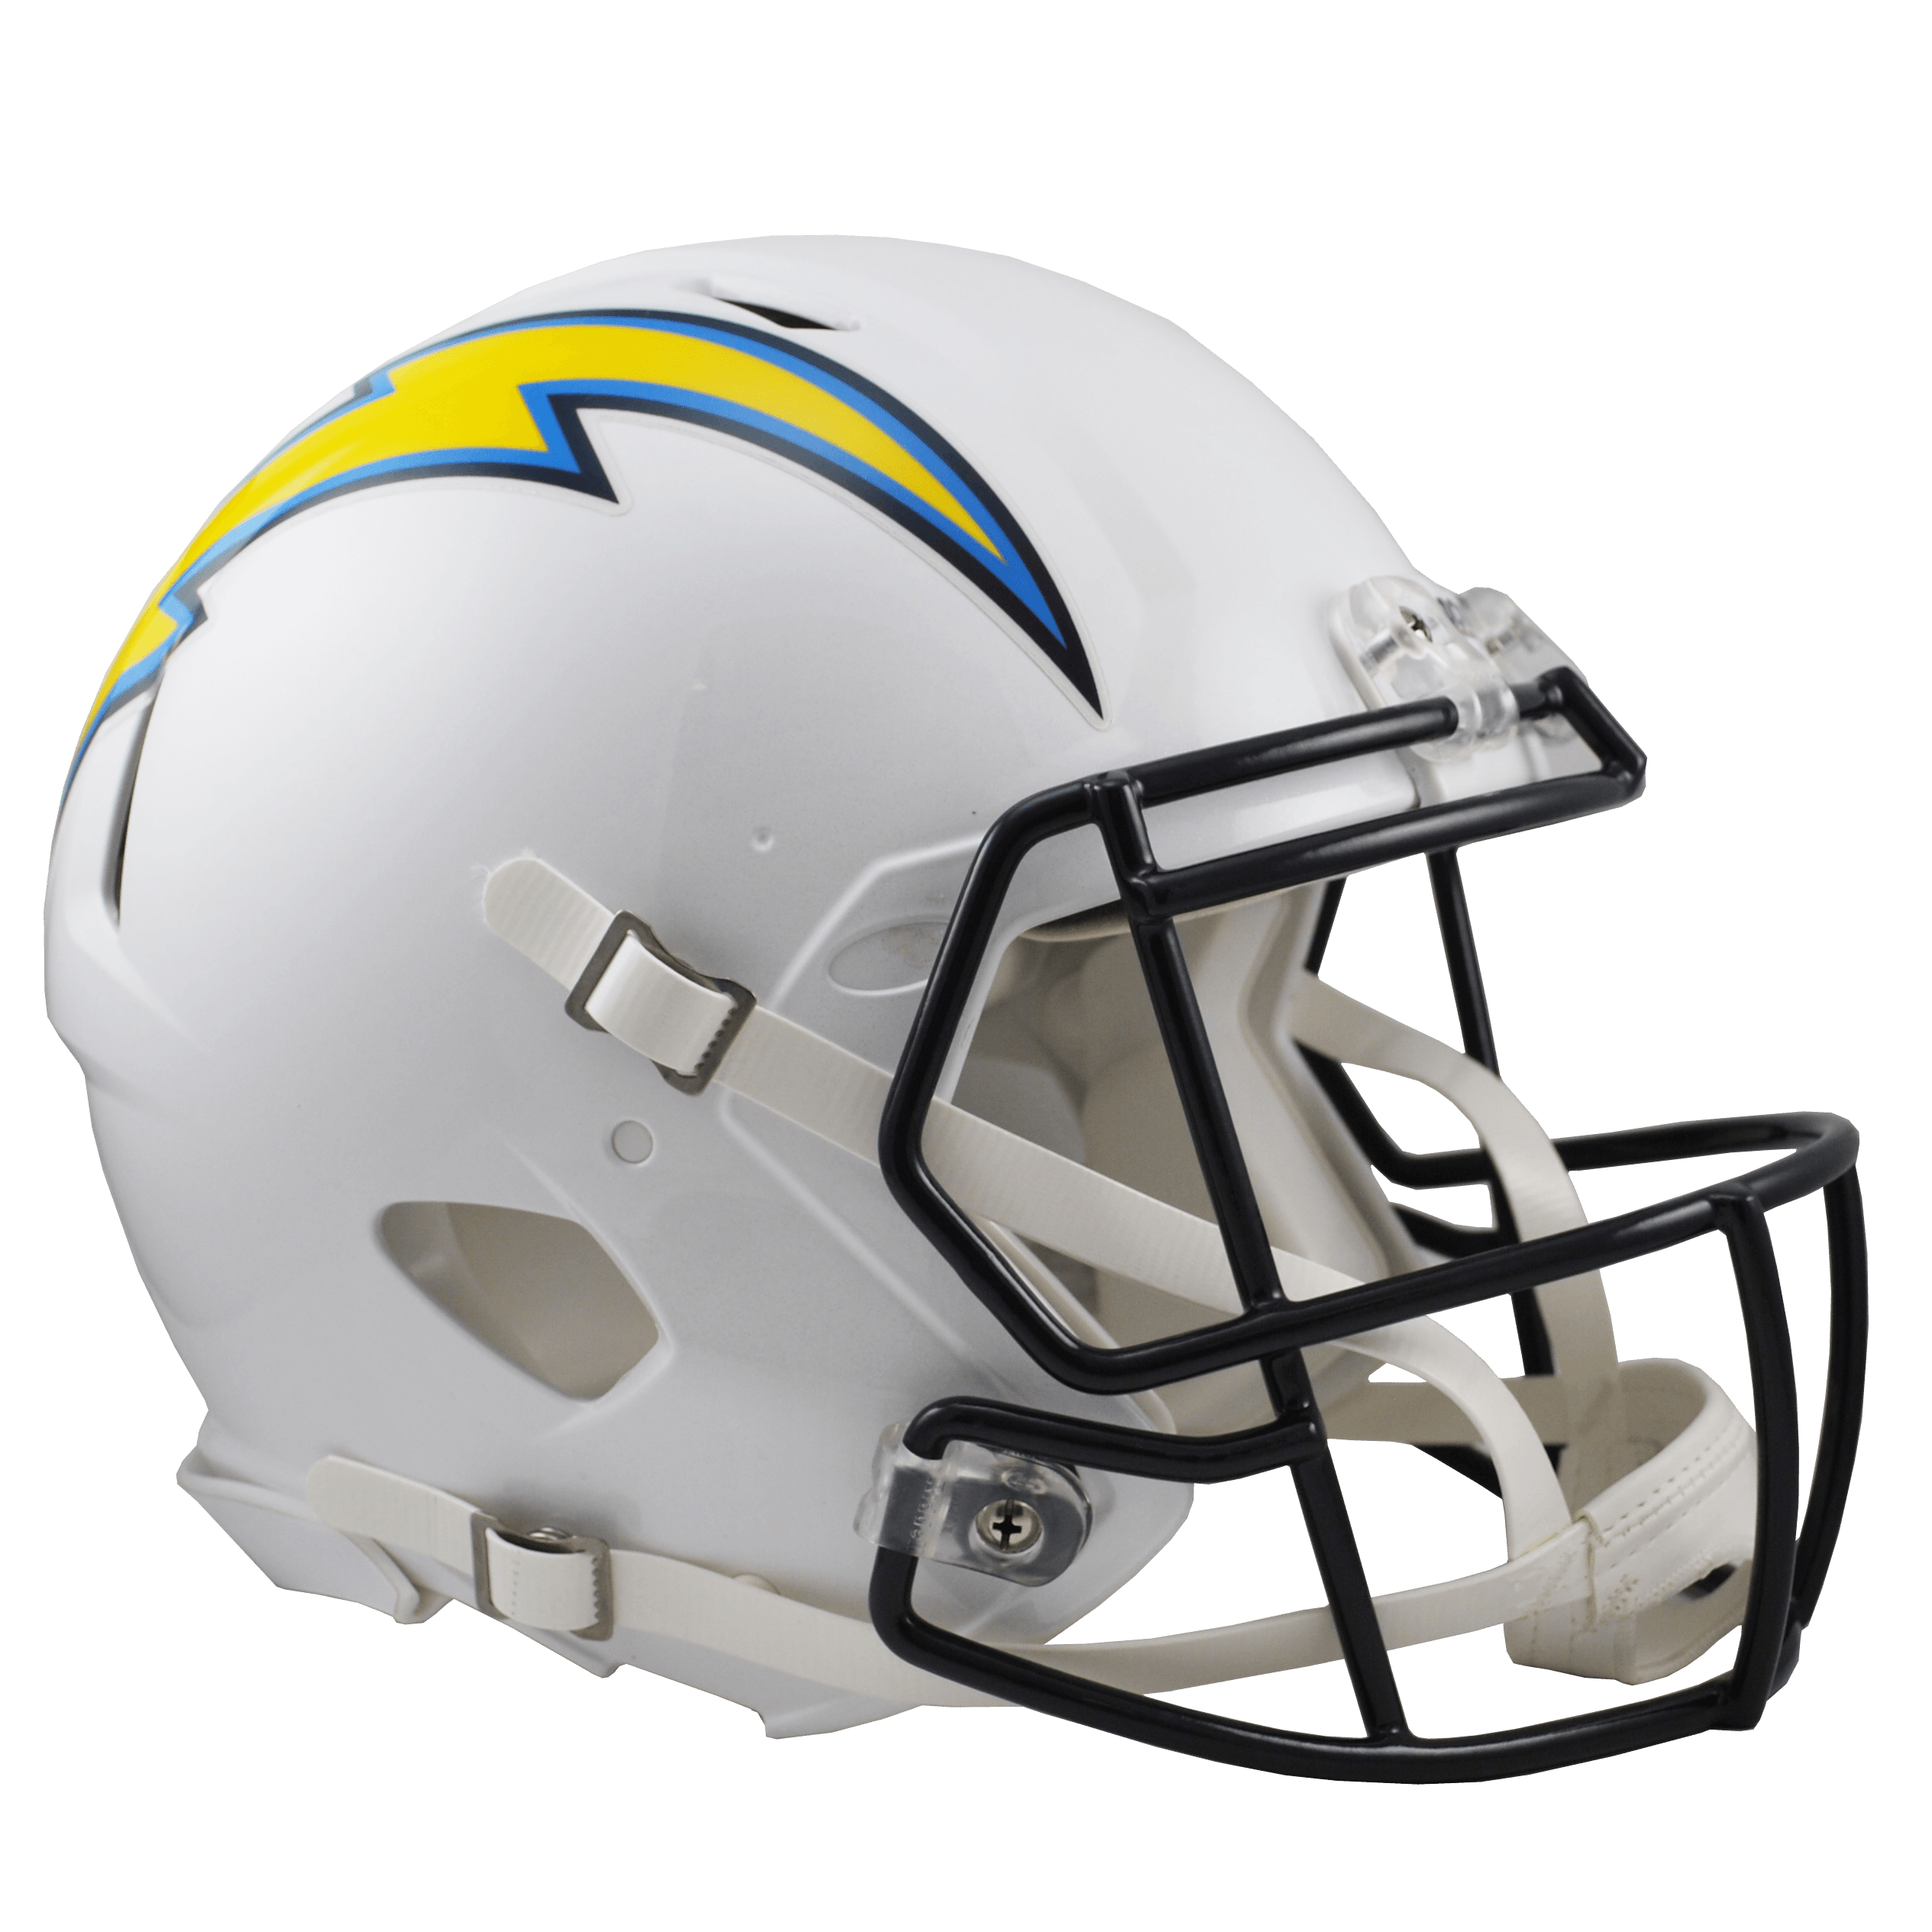 2530x2530 San Diego Chargers Helmet Transparent Png